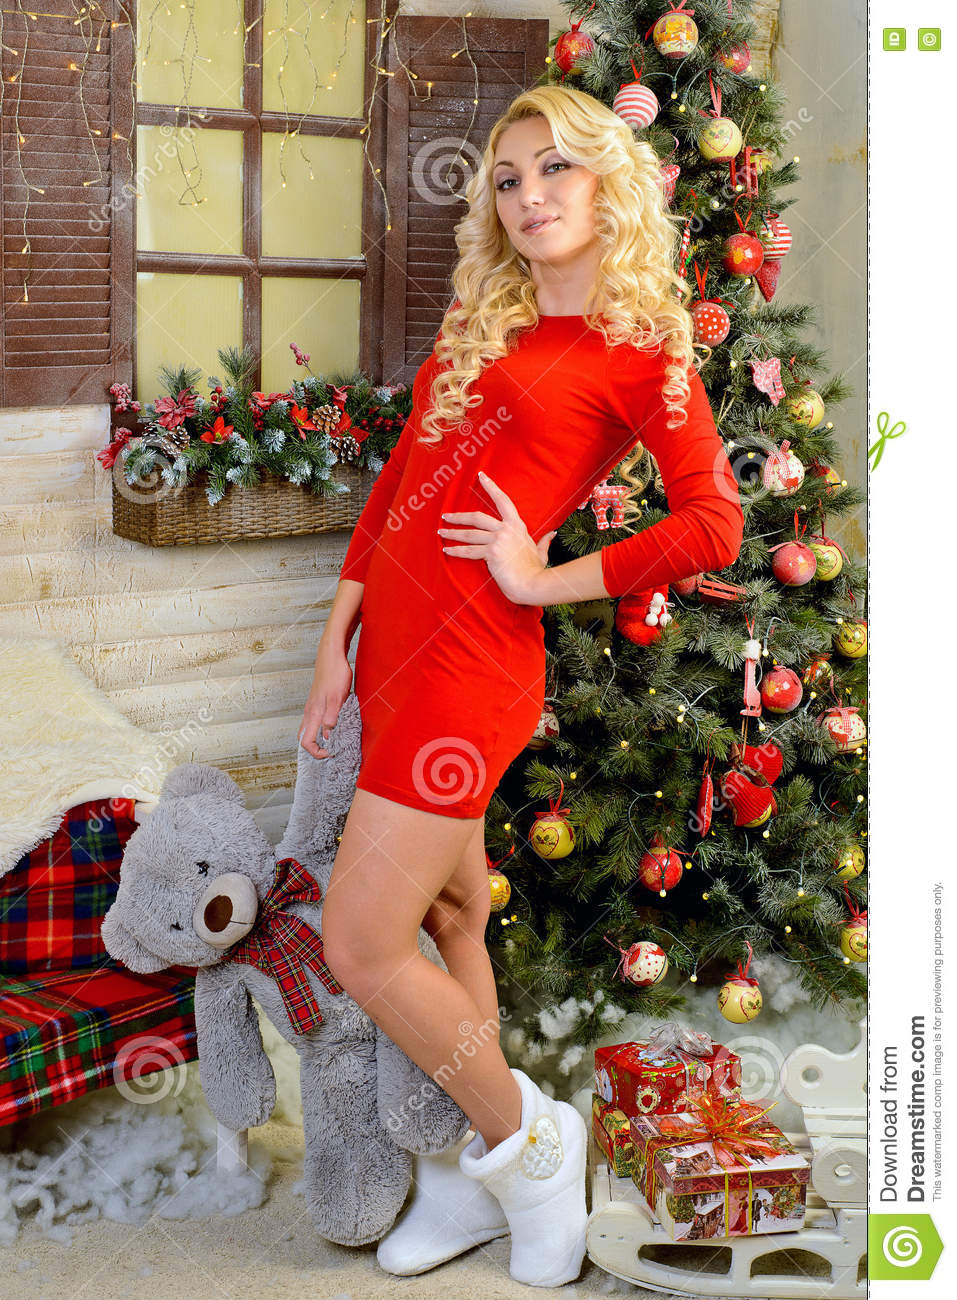 merry girl in red dress standing next to a christmas tree bowl of paw teddy bear volgograd region russia november 8 2015 - A Dream For Christmas